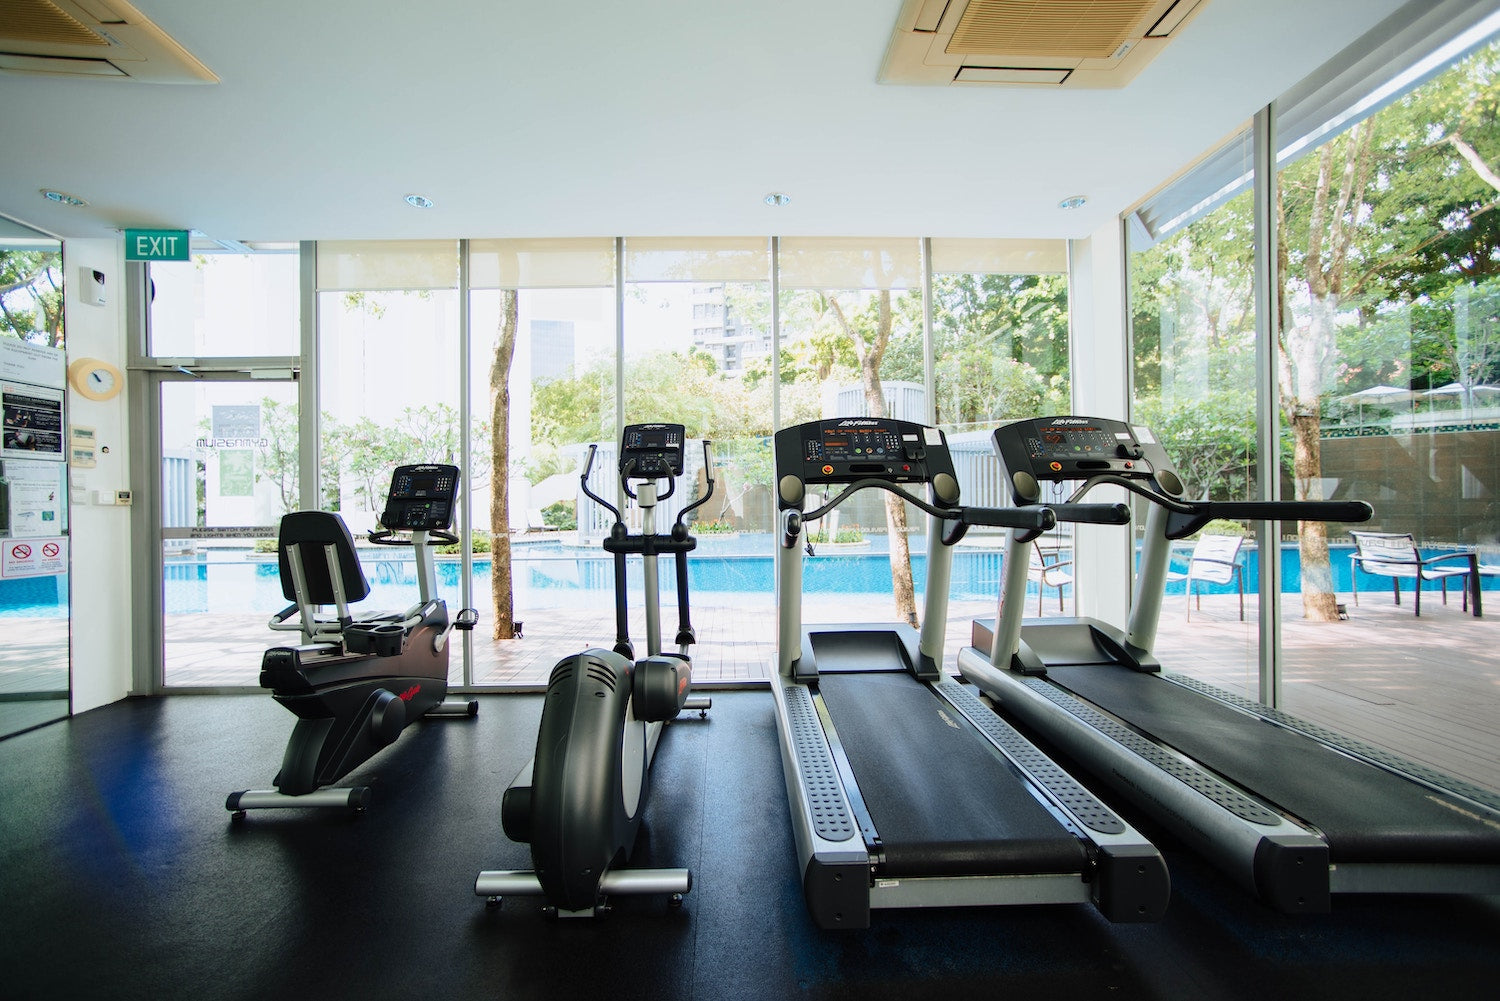 Looking To Make the Move From Gym Treadmill to Outdoor Running? Here's What You Need To Know